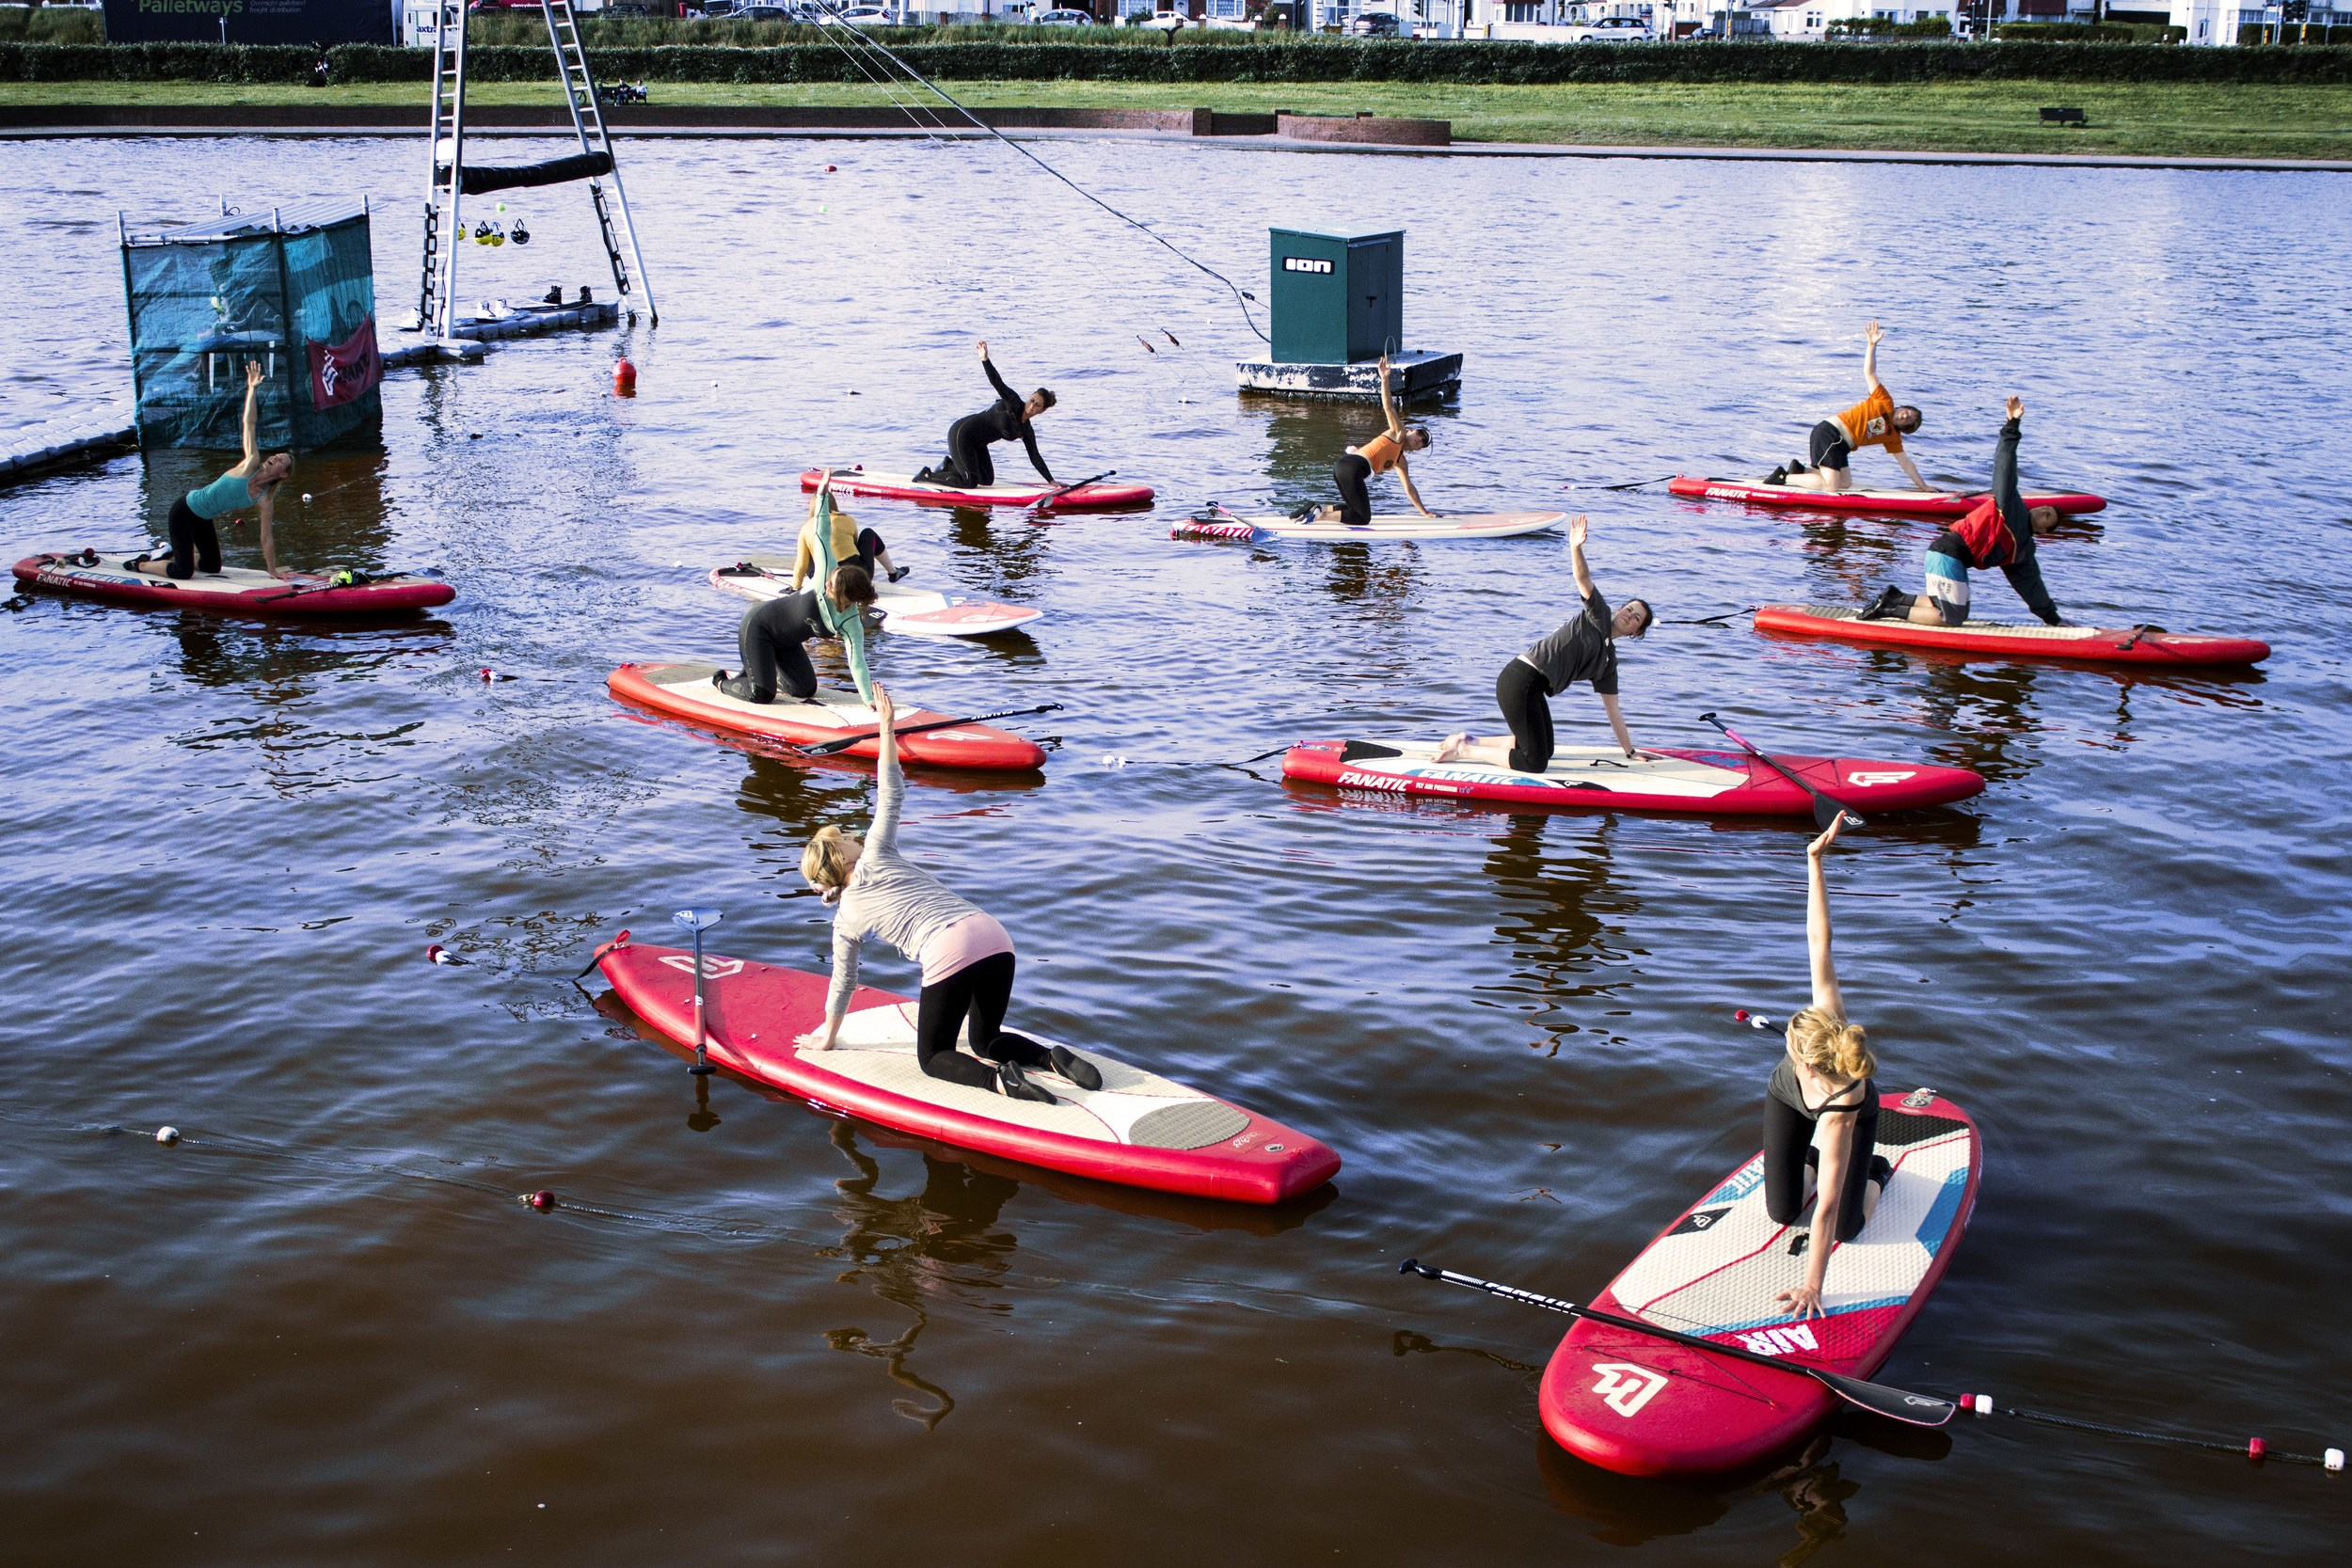 Try an unusual class, like SUP yoga at Hove Lagoon